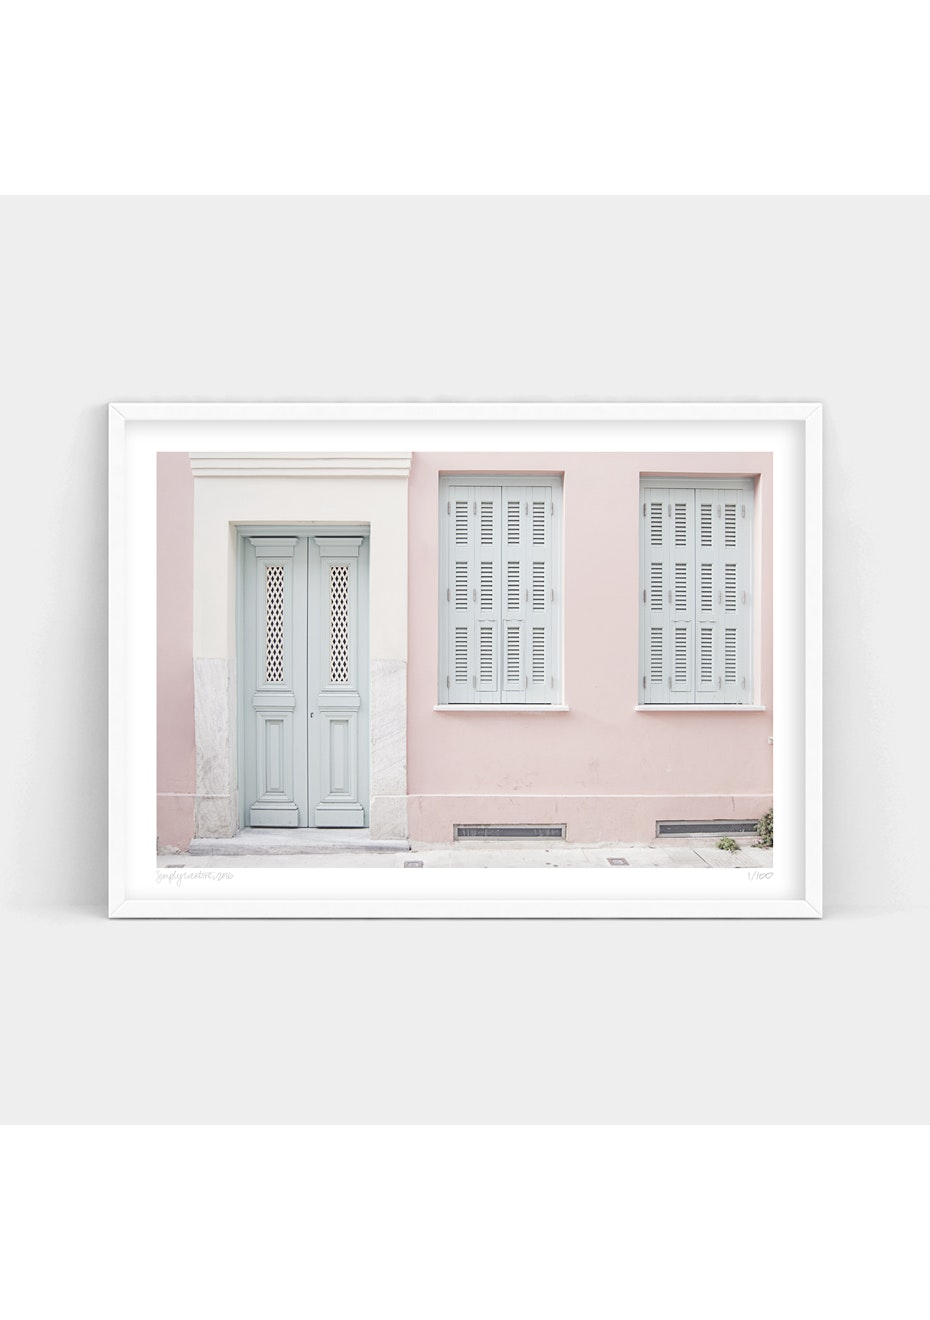 Simply Creative - Calm Passage - A1 Colour Limited Edition Print